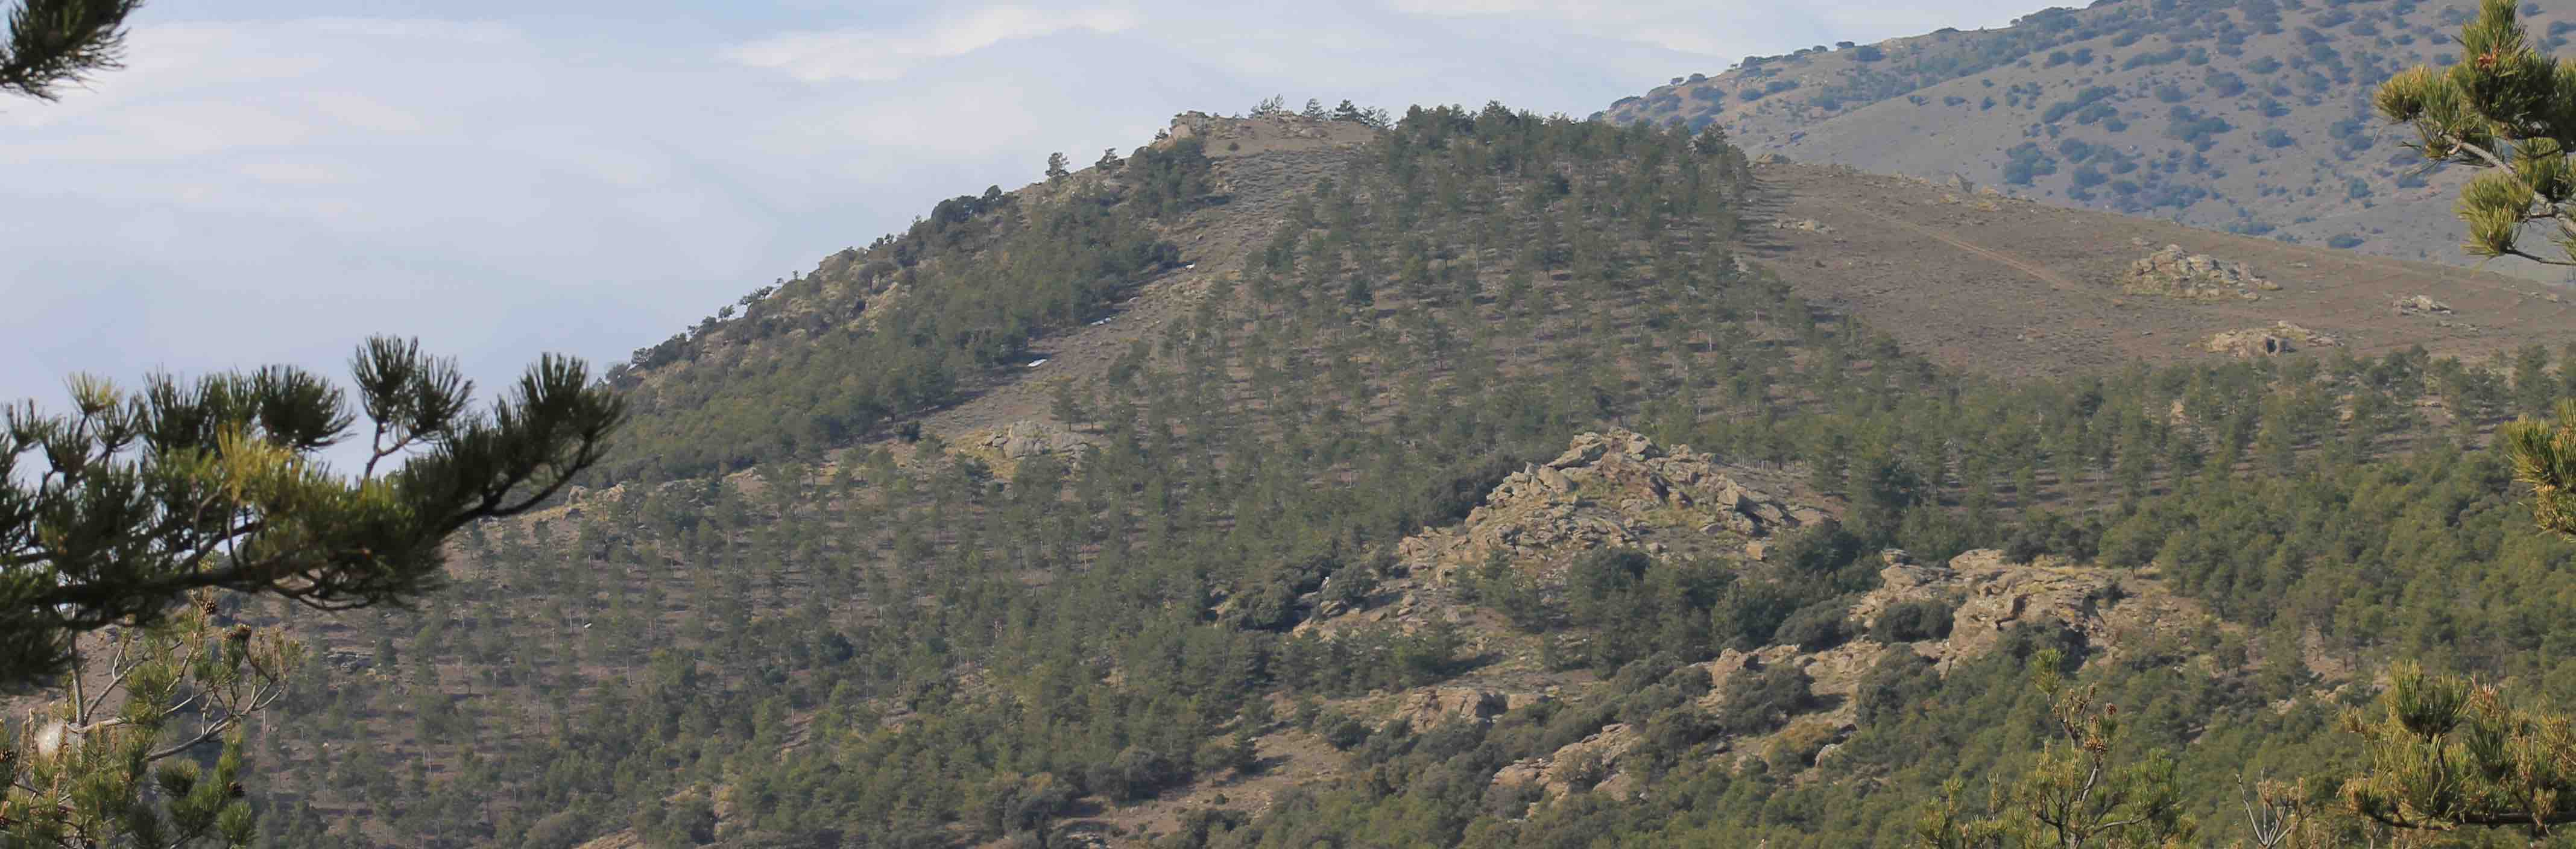 Our exclusive hunting area in Guadix, Granada, Andalucia, Spain for sustainable mountain Southeaster